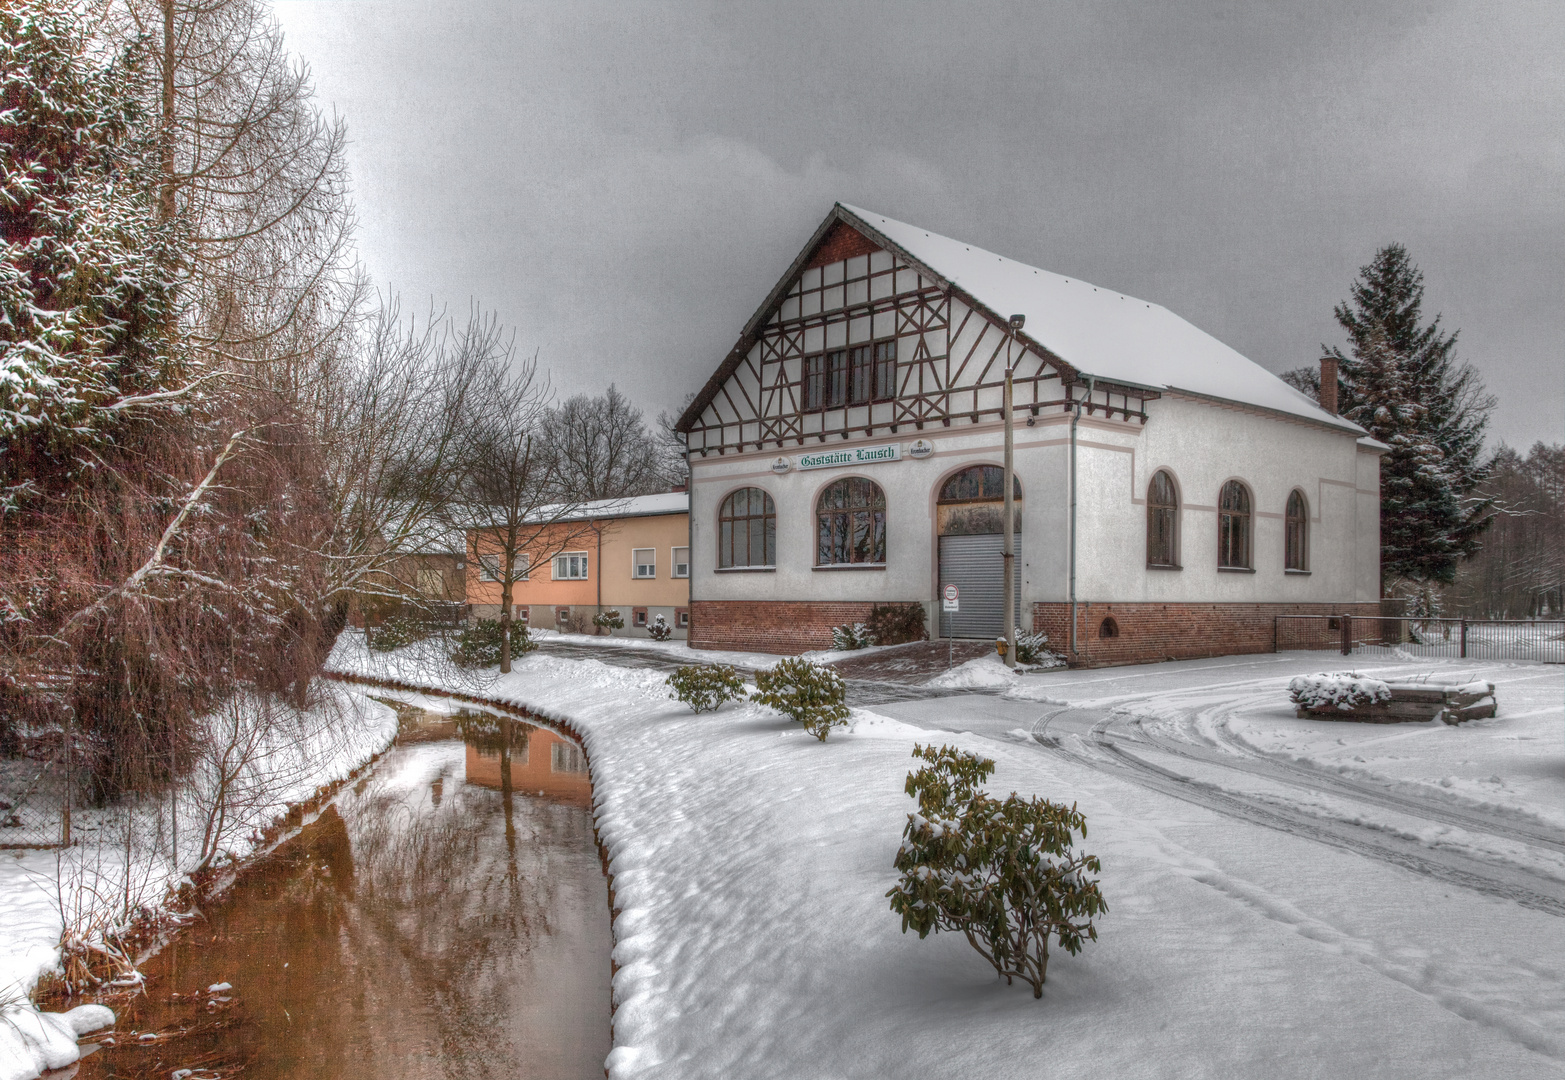 Märzenwinter in Naundorf